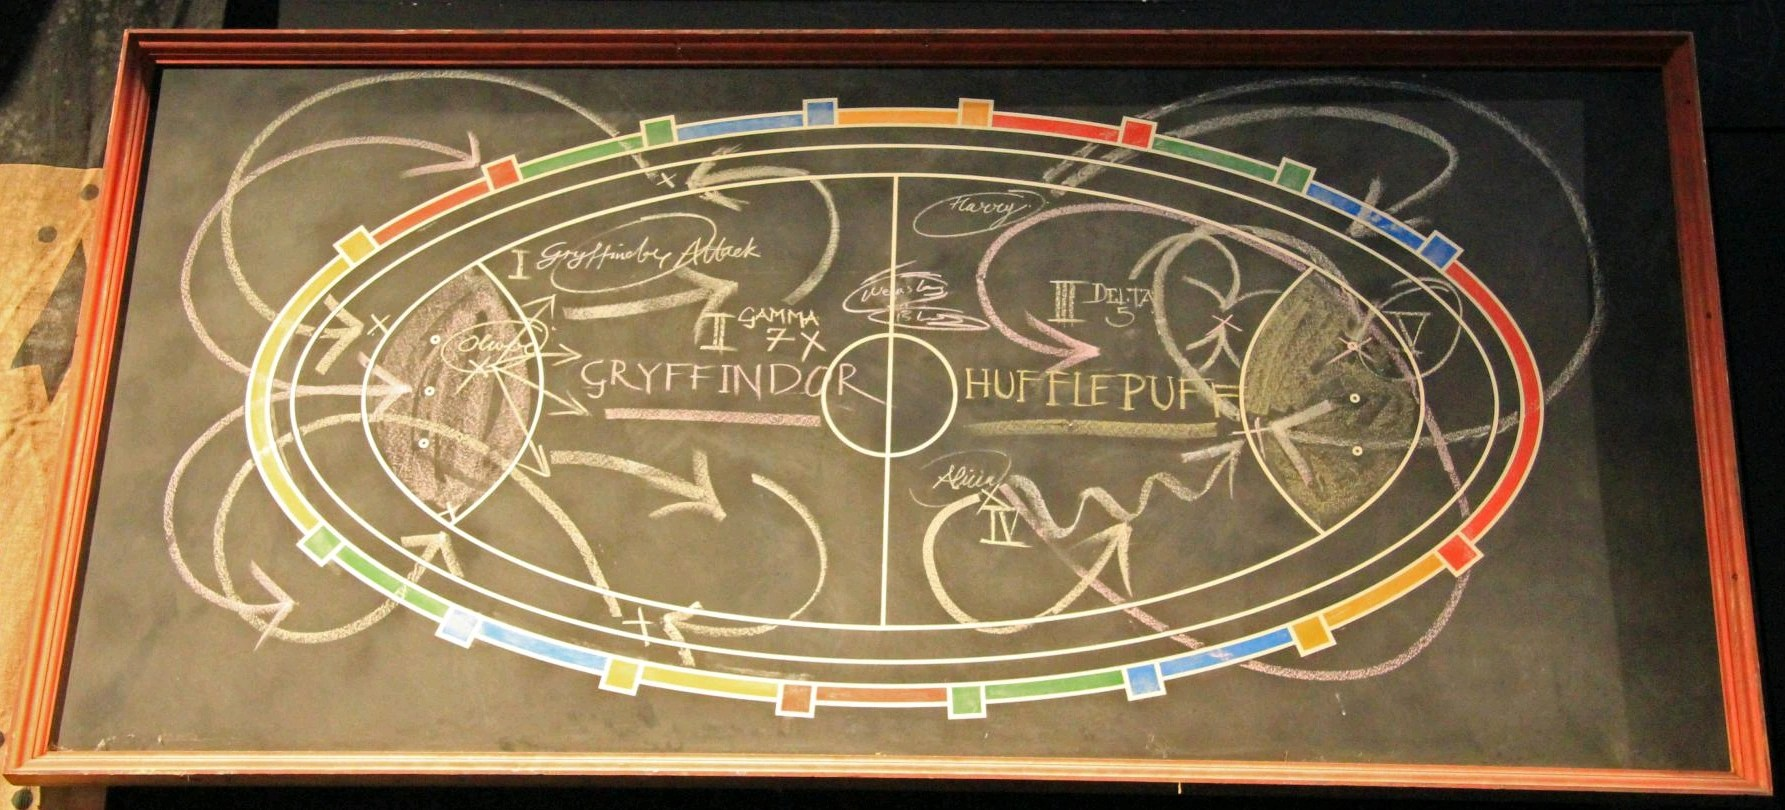 Oliver Wood's Quidditch diagrams | Harry Potter Wiki | FANDOM powered by Wikia